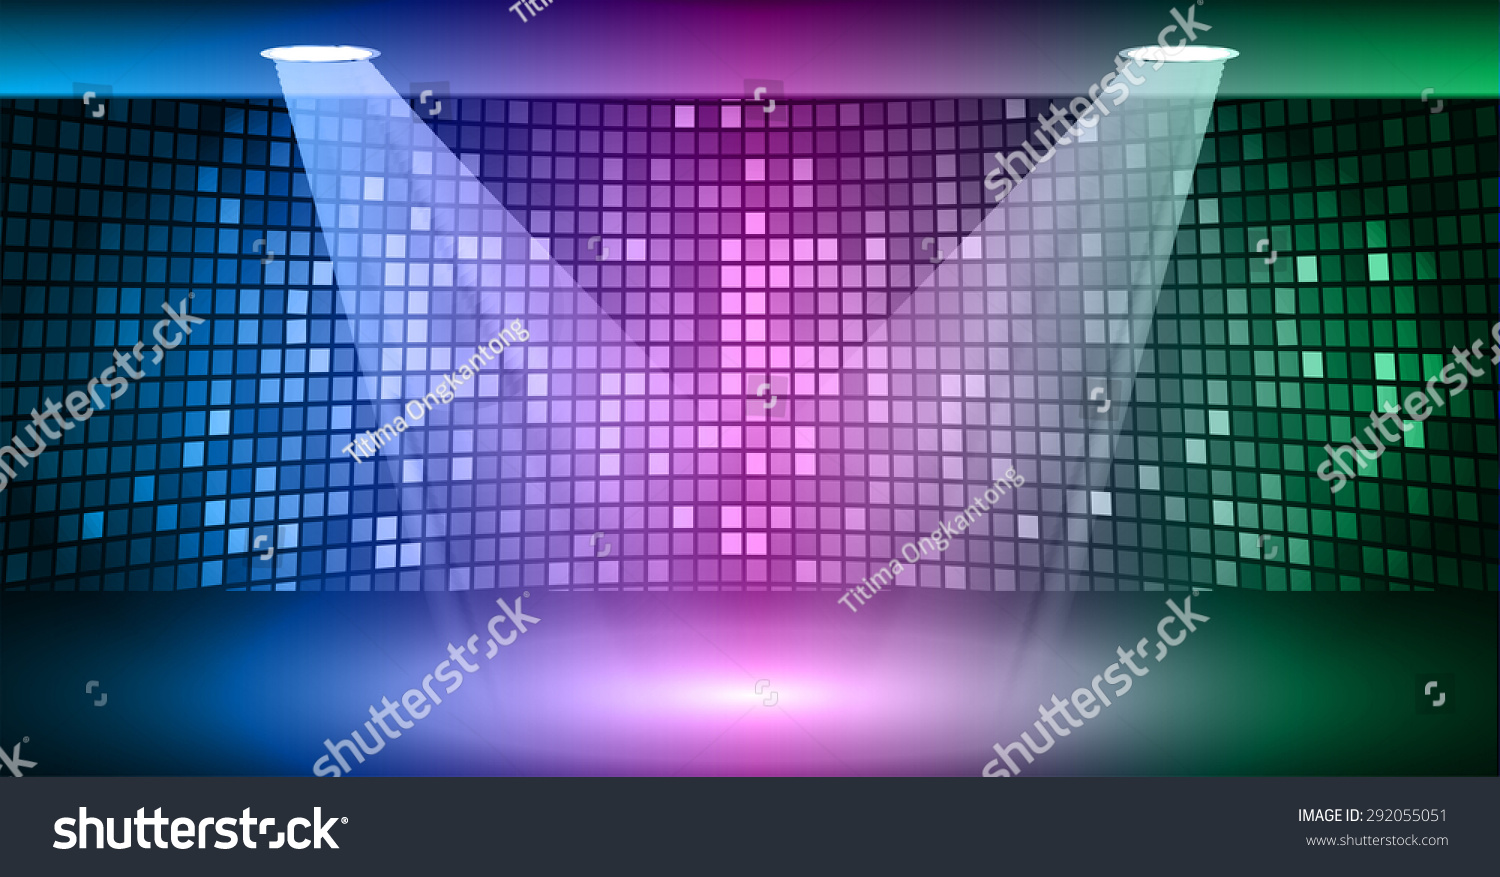 Abstract Technology Background With Light Effect: Stage Lighting Blue Purple Green Background Stock Vector